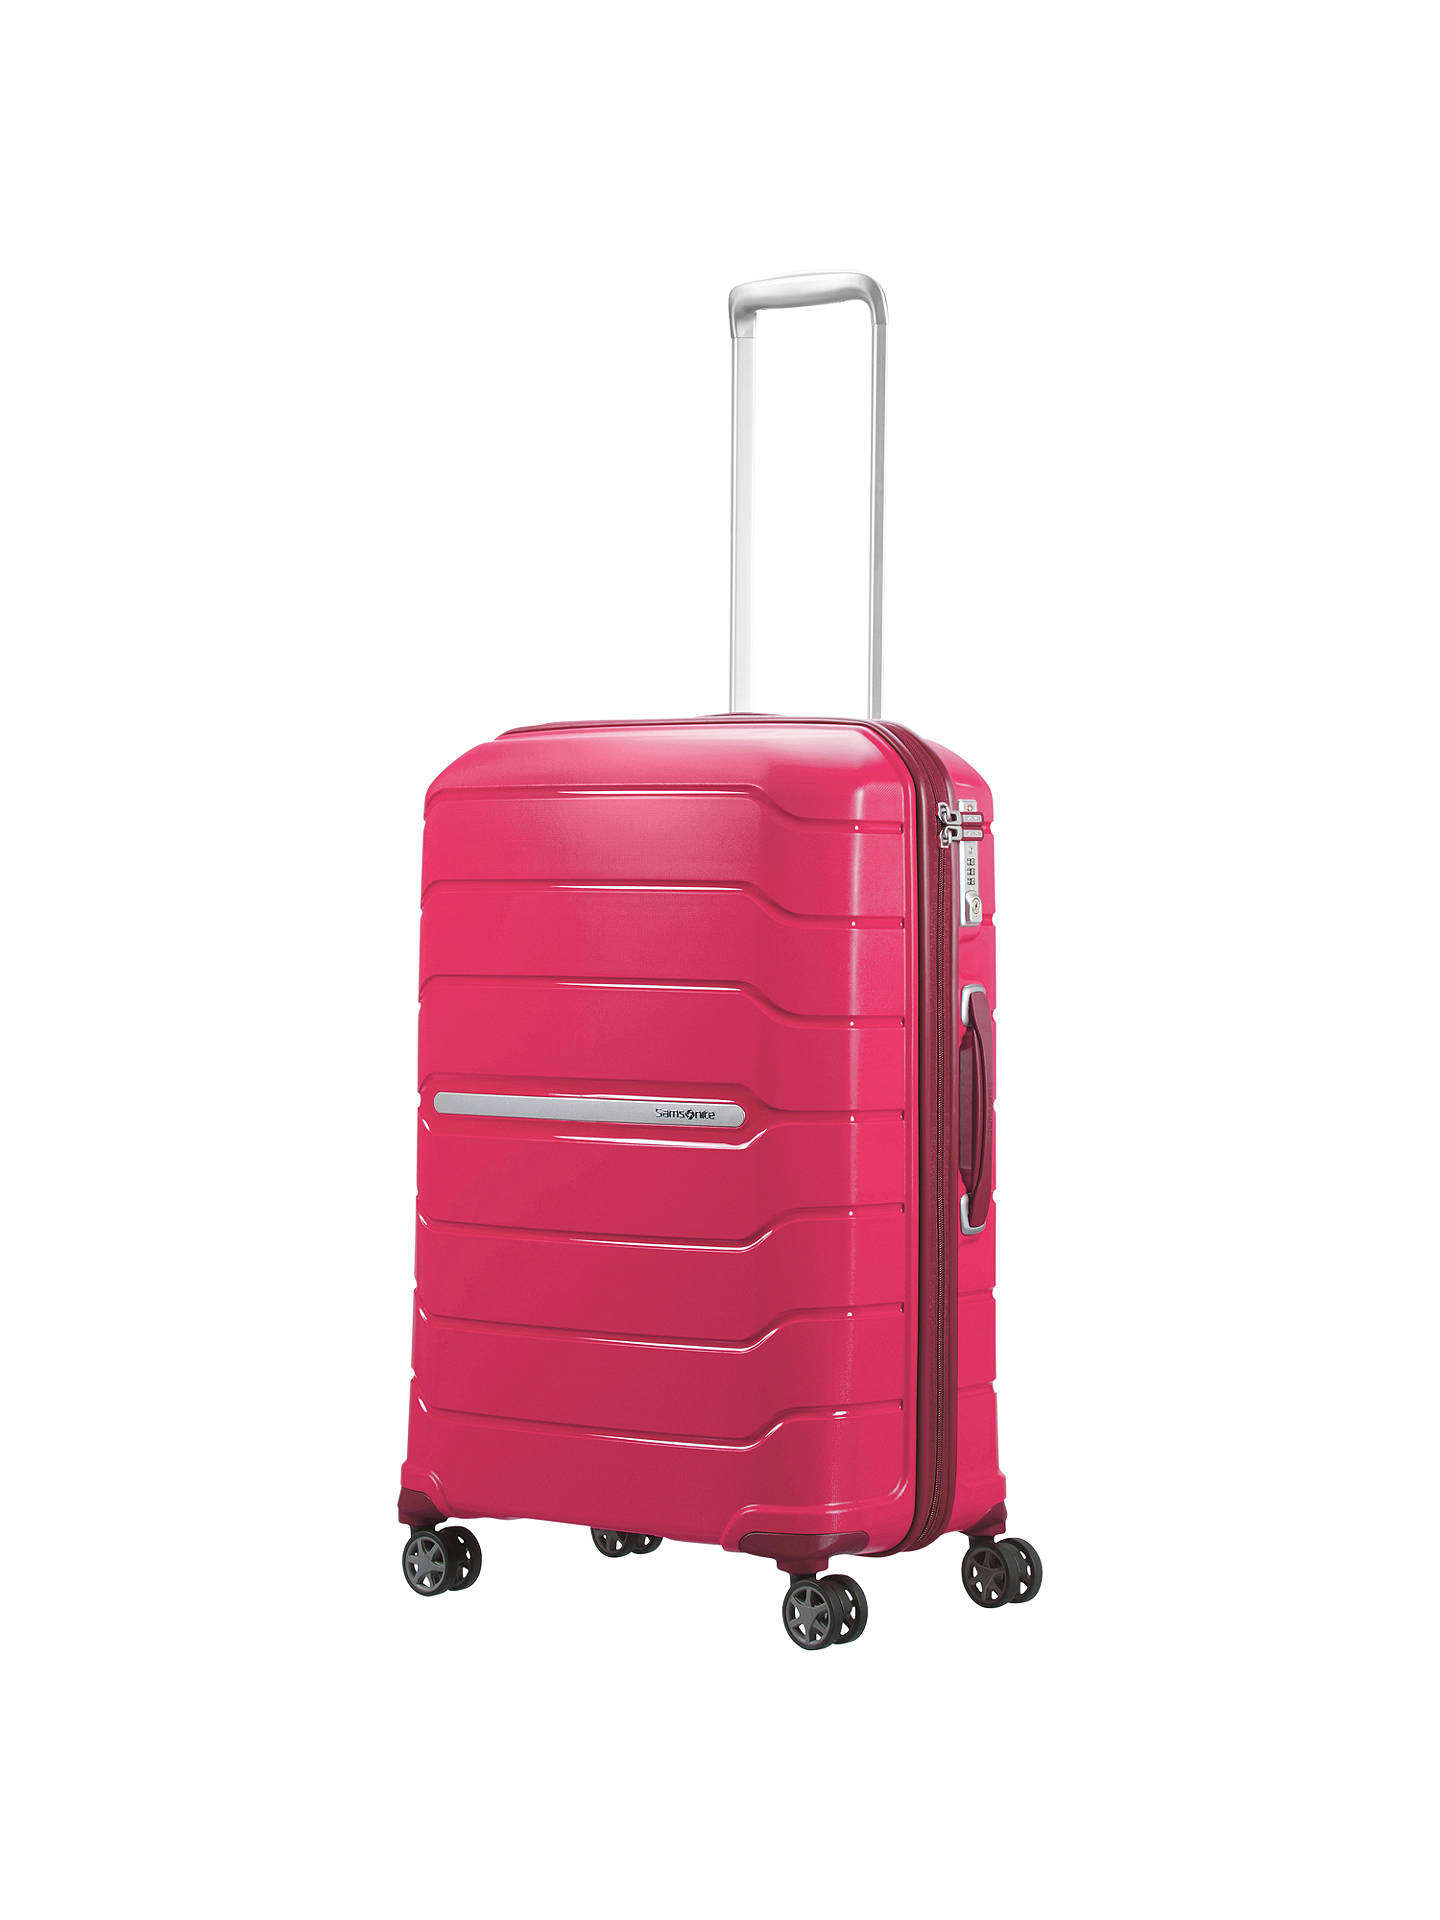 Buy Samsonite Flux Spinner 4-Wheel 68cm Medium Suitcase, Red Berry Online at johnlewis.com